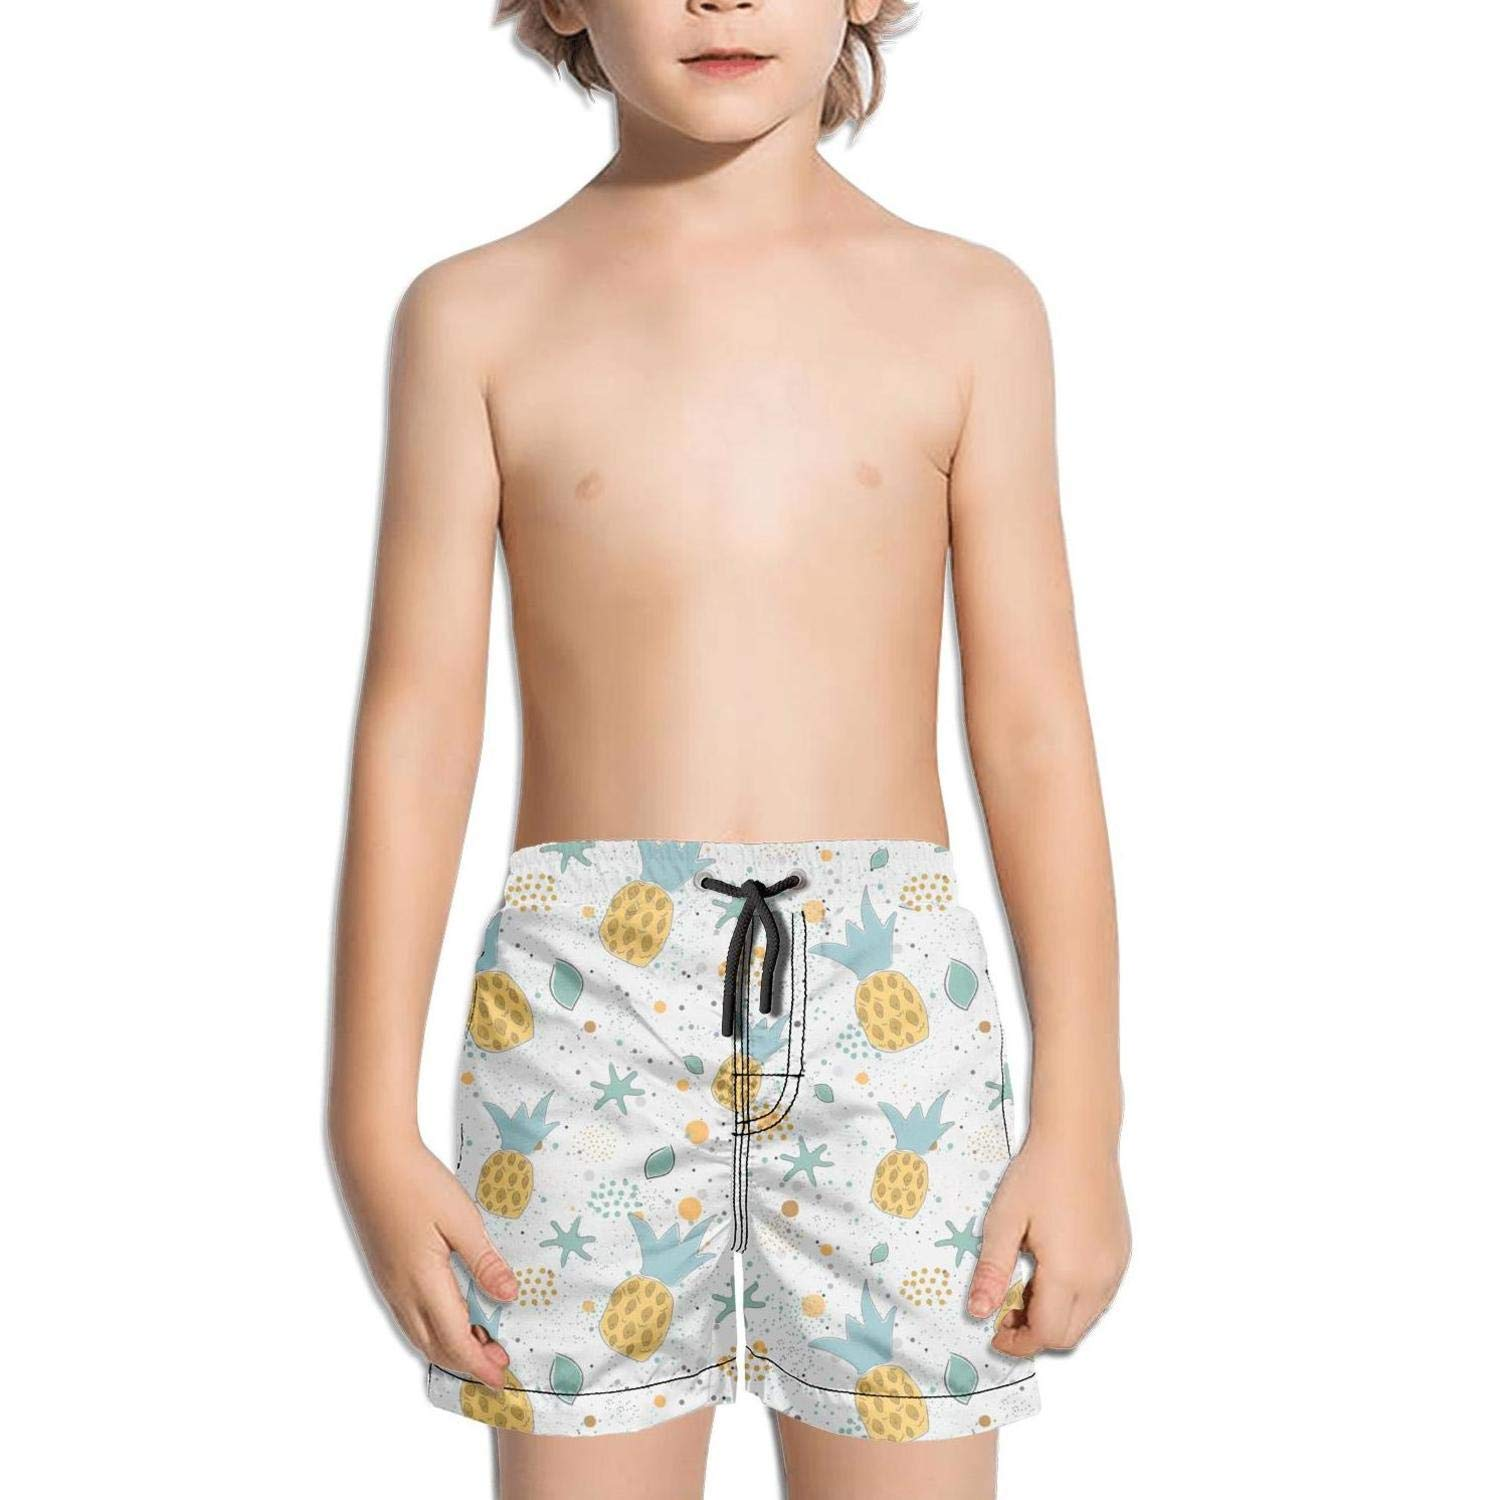 Boys Boardshorts colofuly Rainbow Cartoon Pineapple White Background Quick Dry Bathing Suits Beach Board Shorts